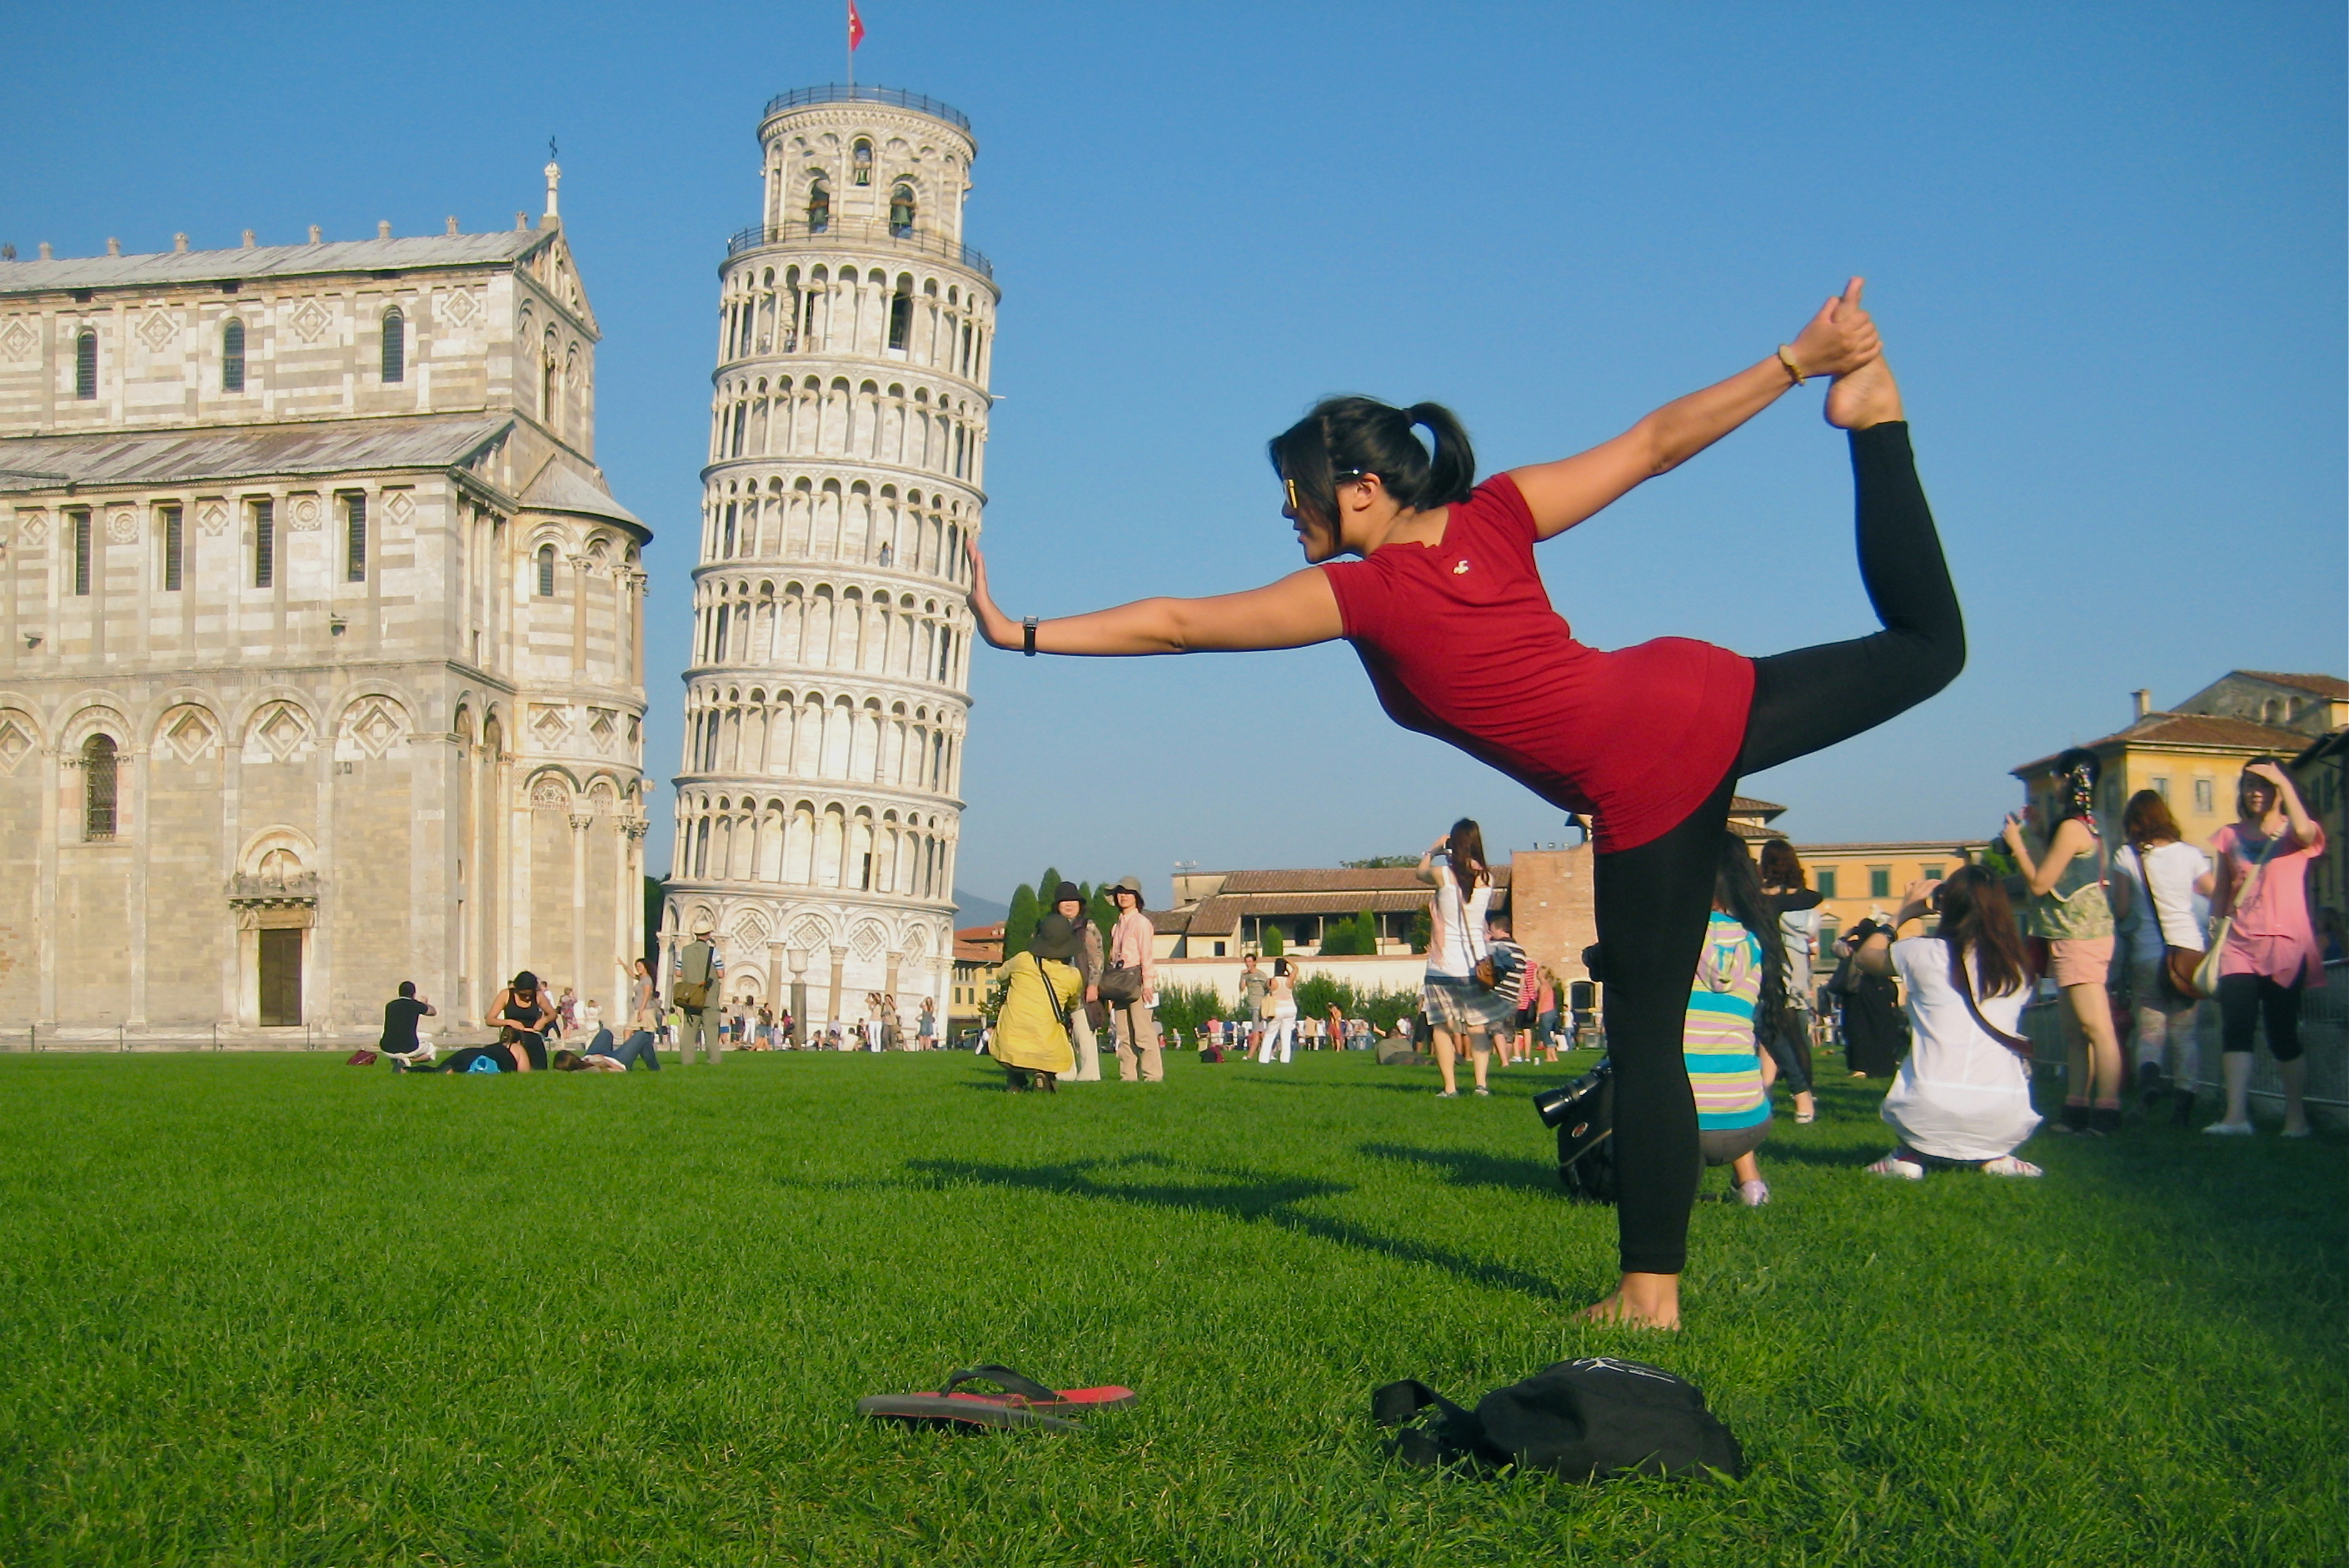 Karra Barron posing at the Leaning Tower of Pisa in Pisa, Italy